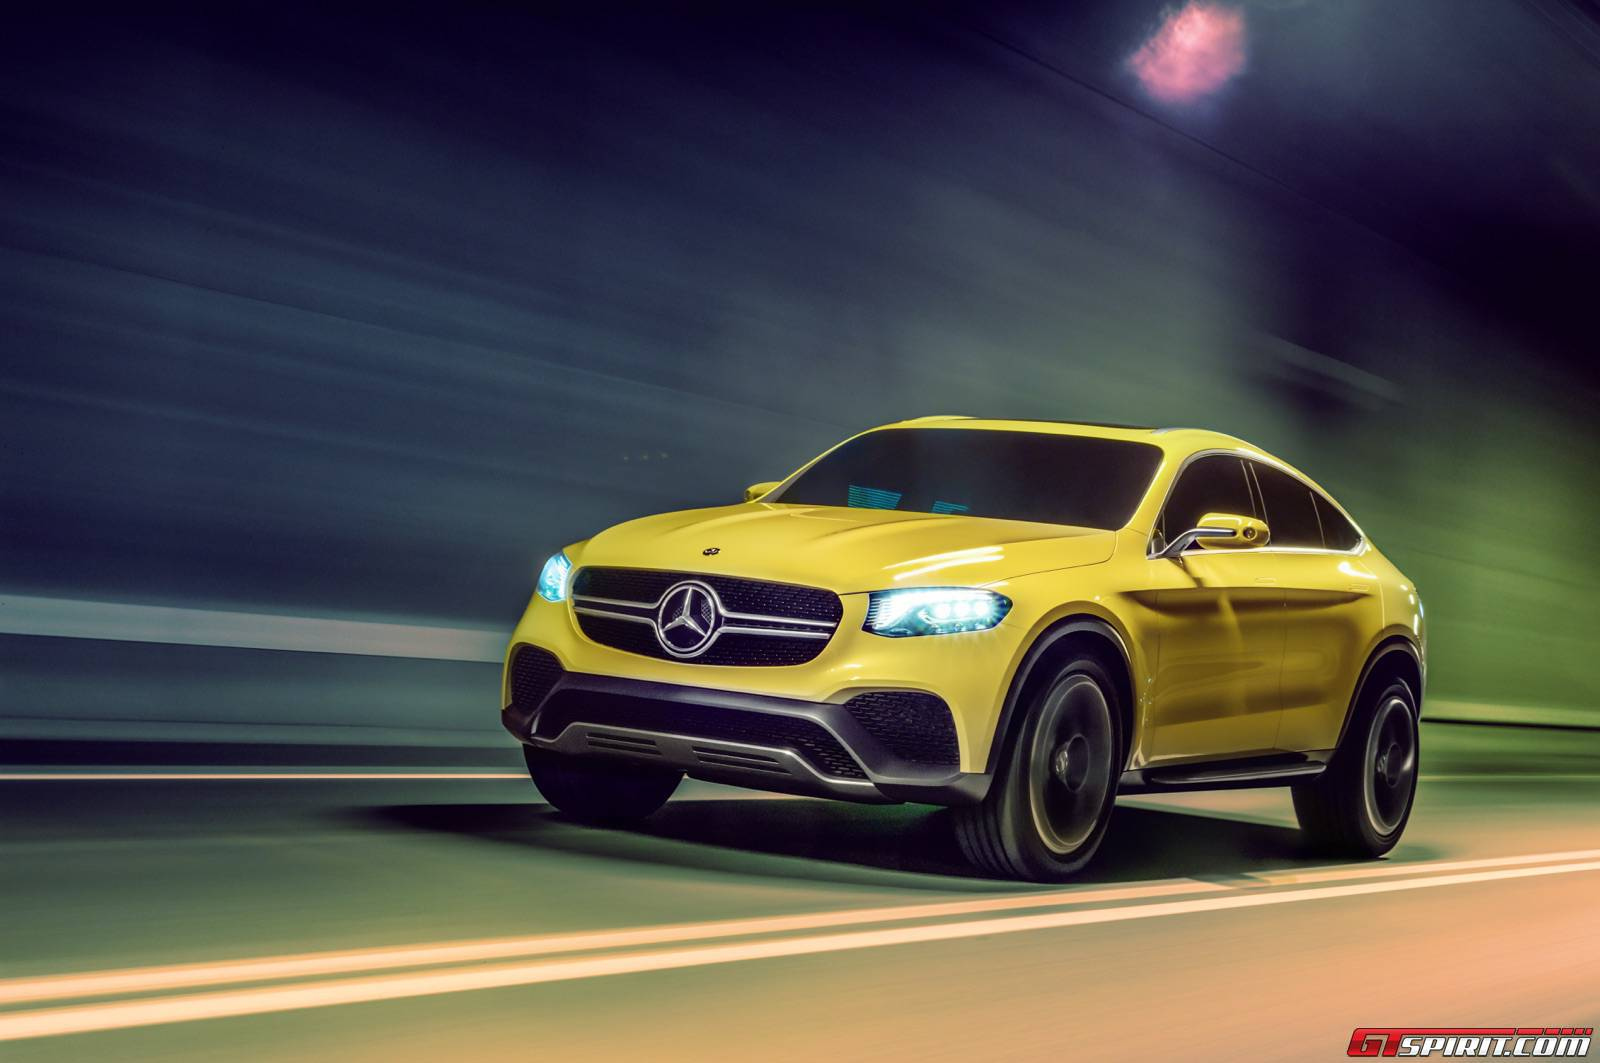 Mercedes benz glc coupe amg sport models in the works for Mercedes benz glc